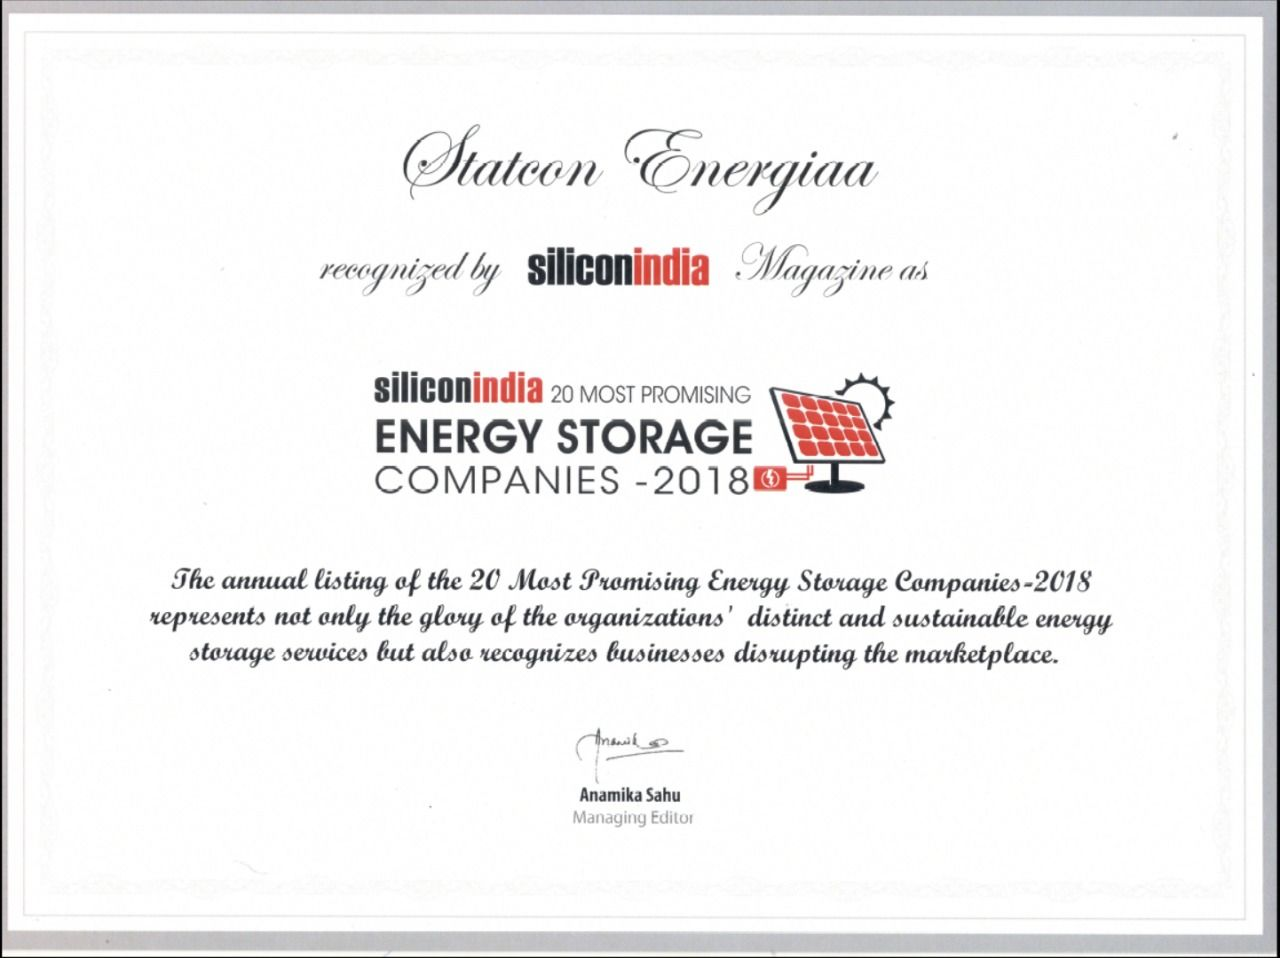 Silicon India Magazines has featured STATCON ENERGIAA in